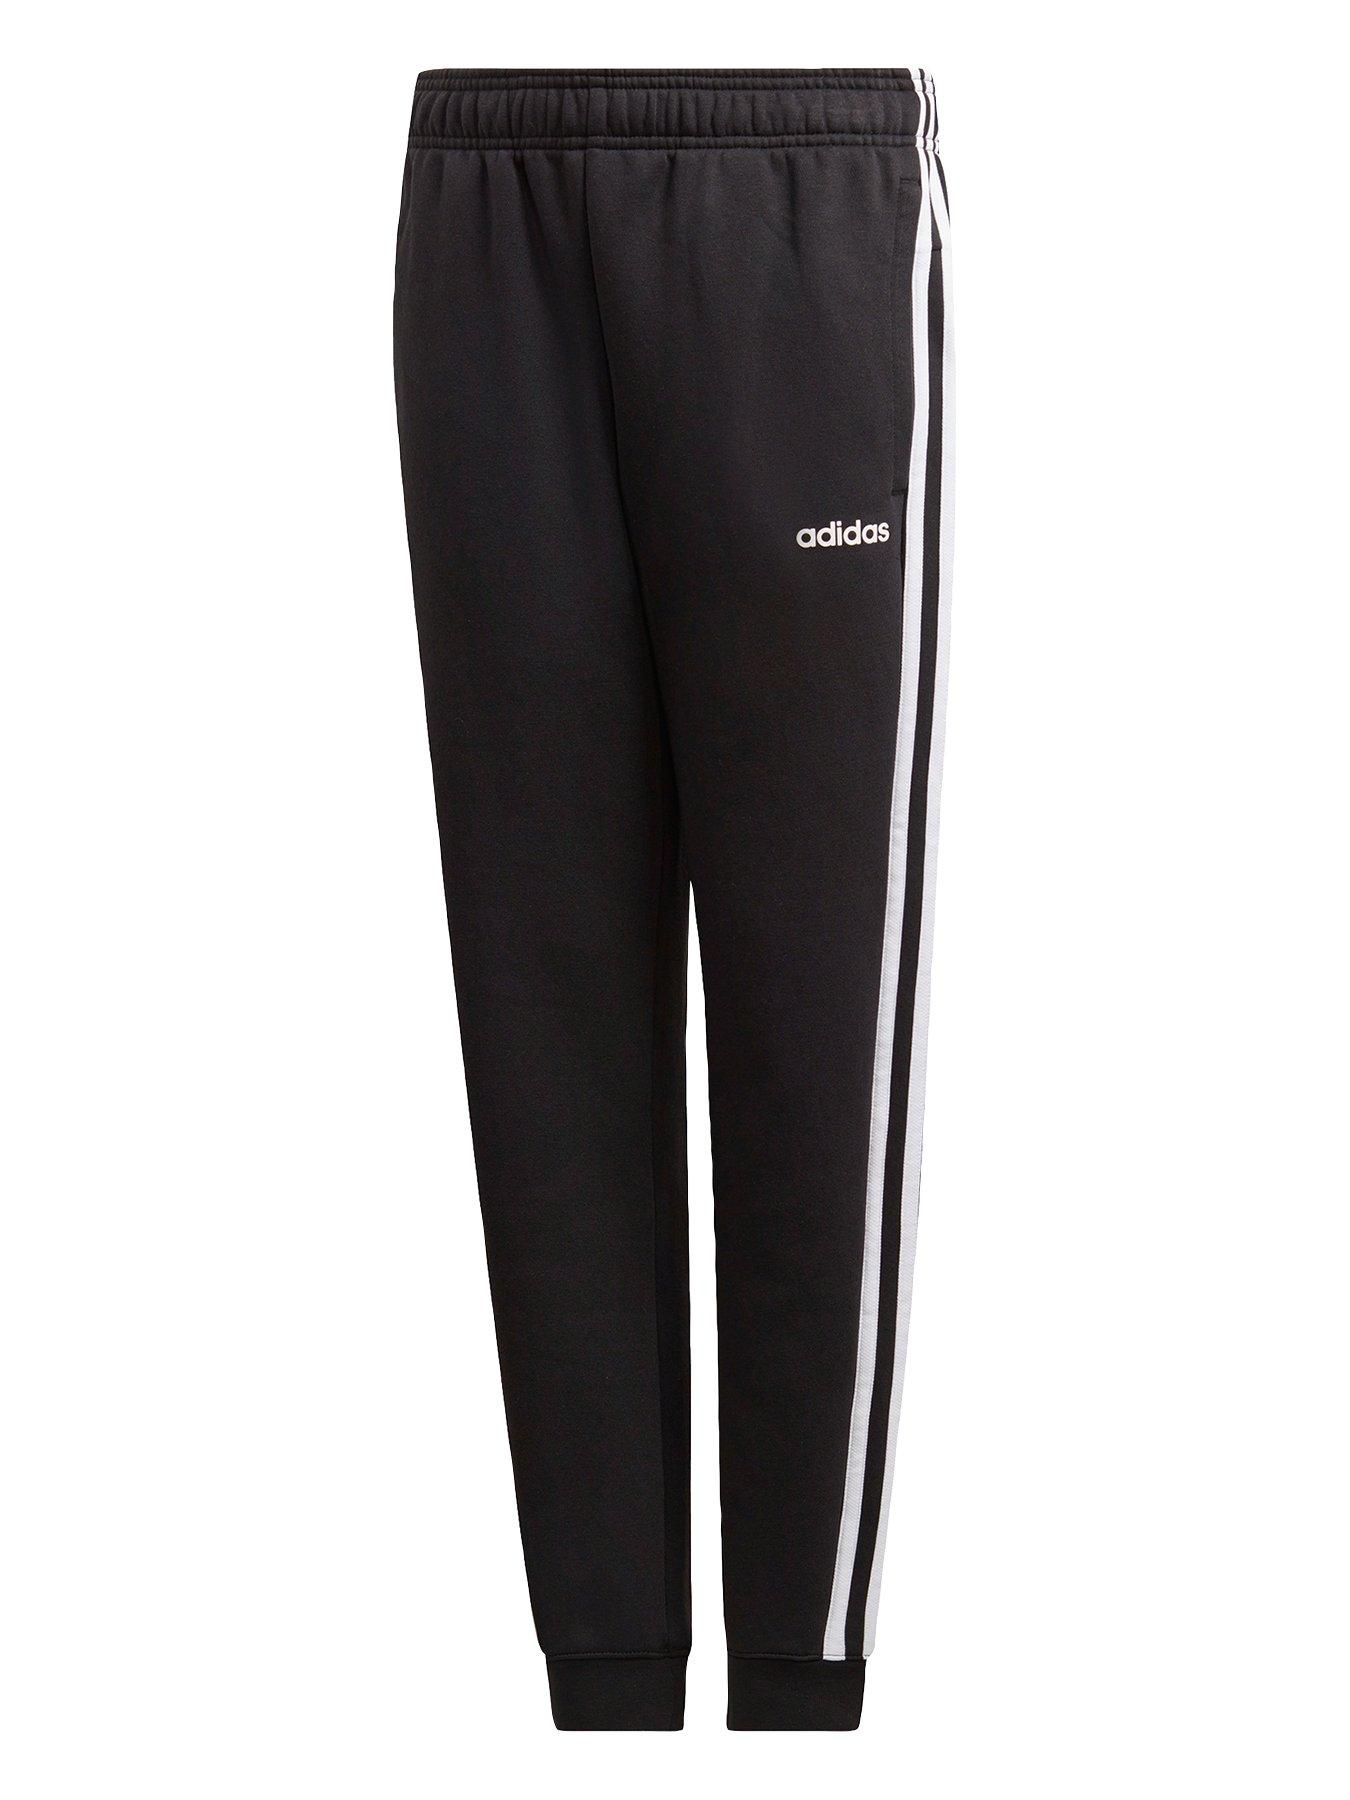 Adidas | Jogging bottoms | Kids & baby sports clothing